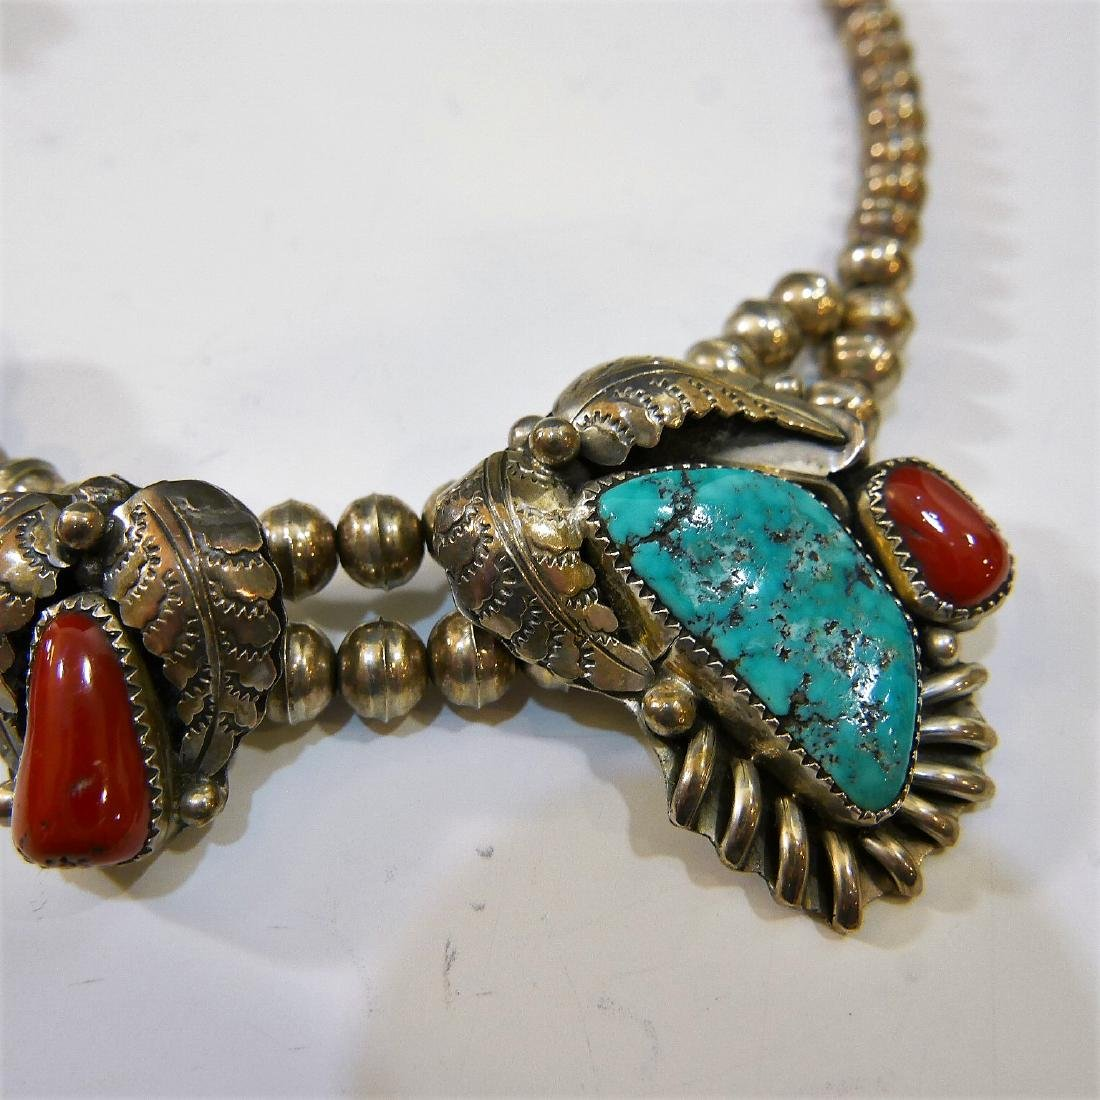 NAVAJO STERLING SILVER CORAL TURQUOISE NECKLACE - 4